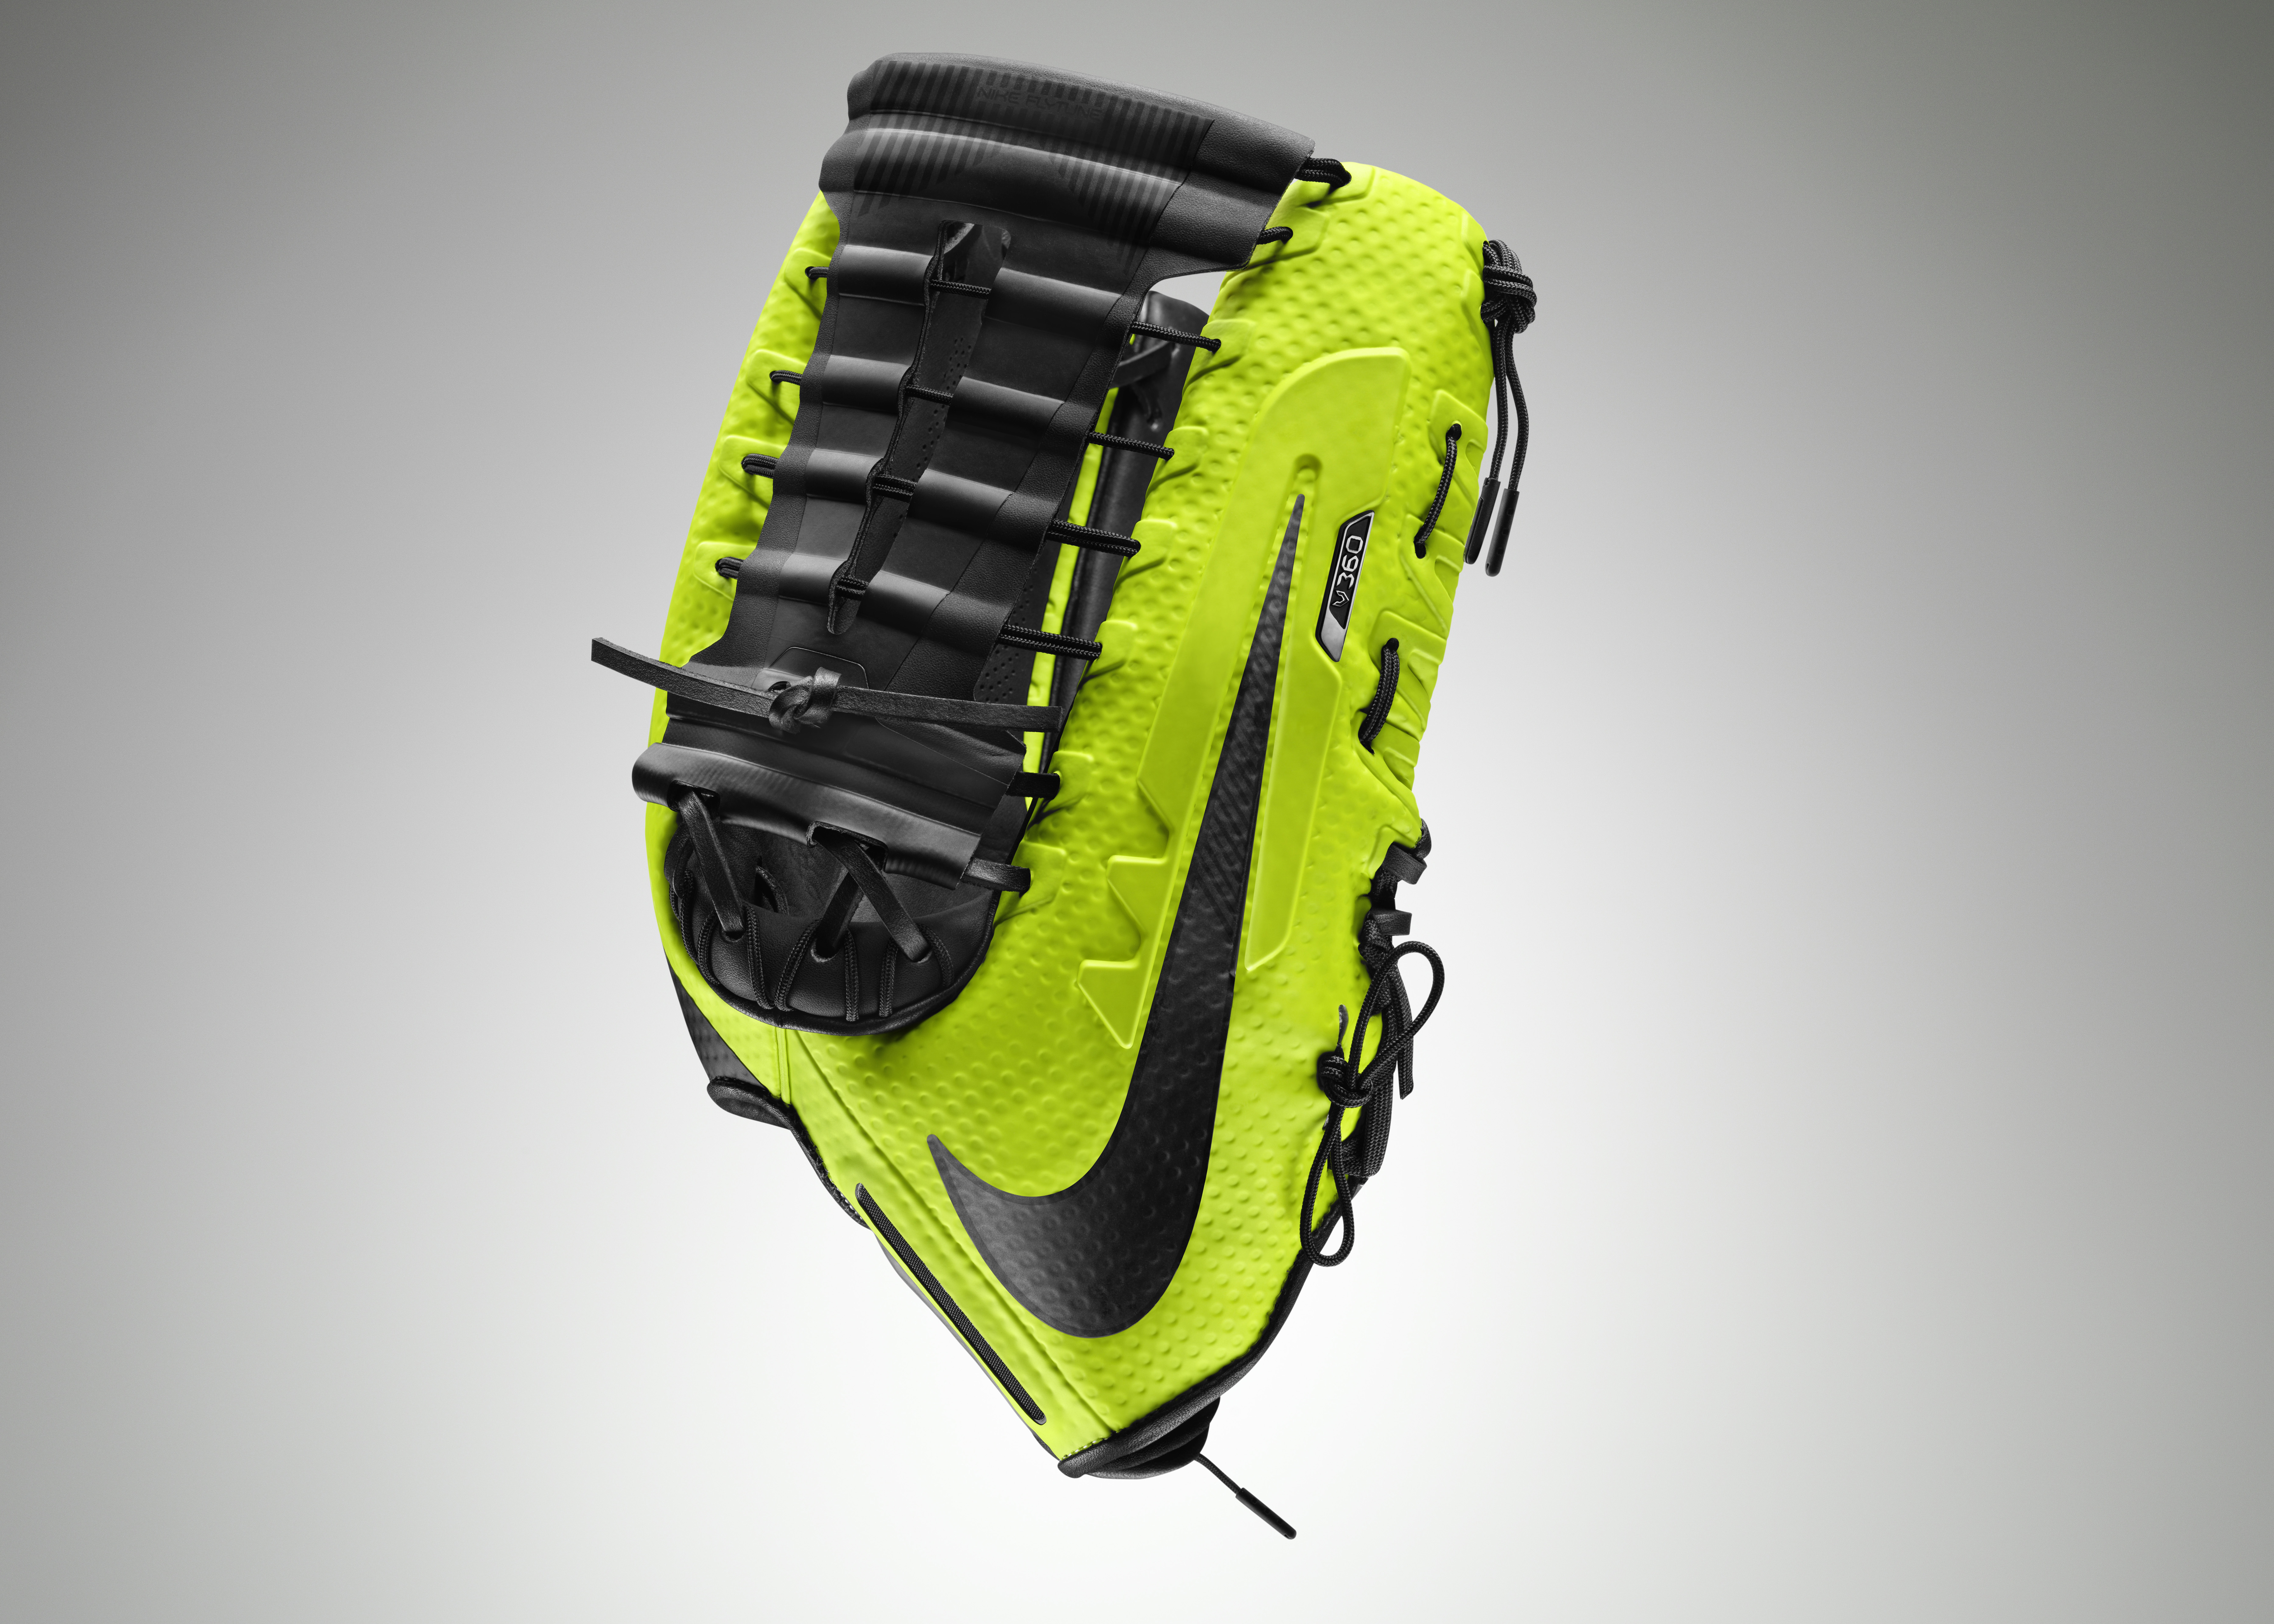 LO · HI. Nike Fuses Heritage with Innovation with Launch of Vapor 360  Fielding Glove